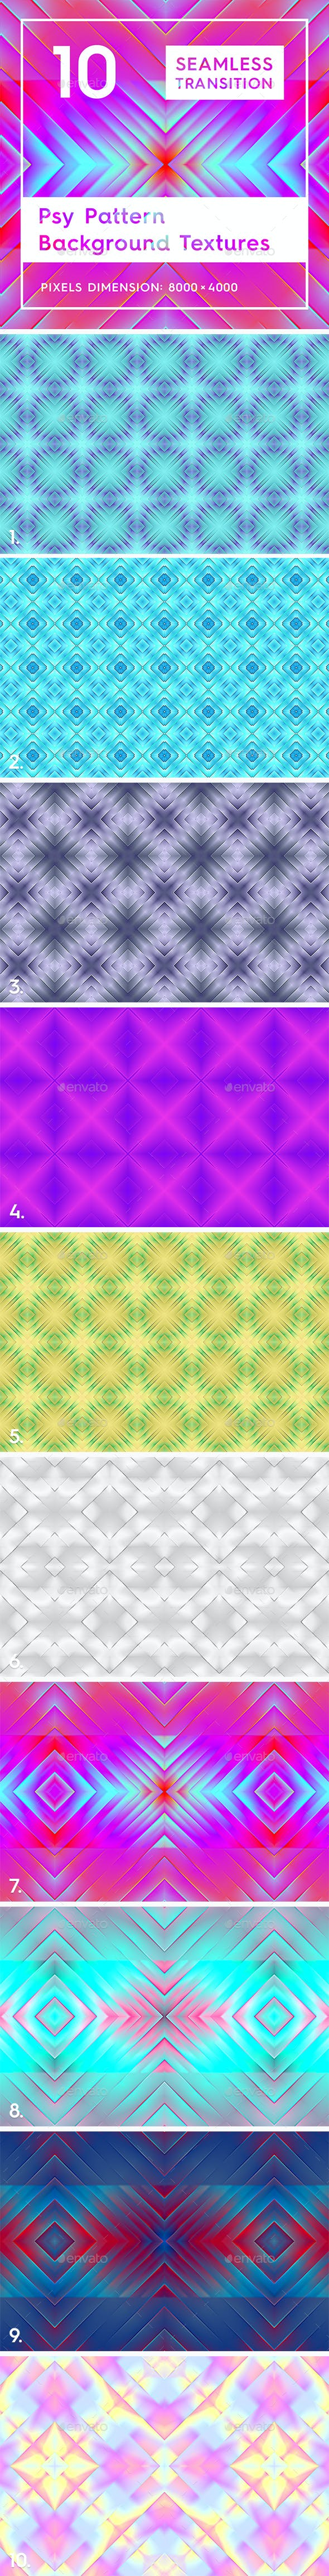 10 Psy Pattern Background Textures - 3DOcean Item for Sale